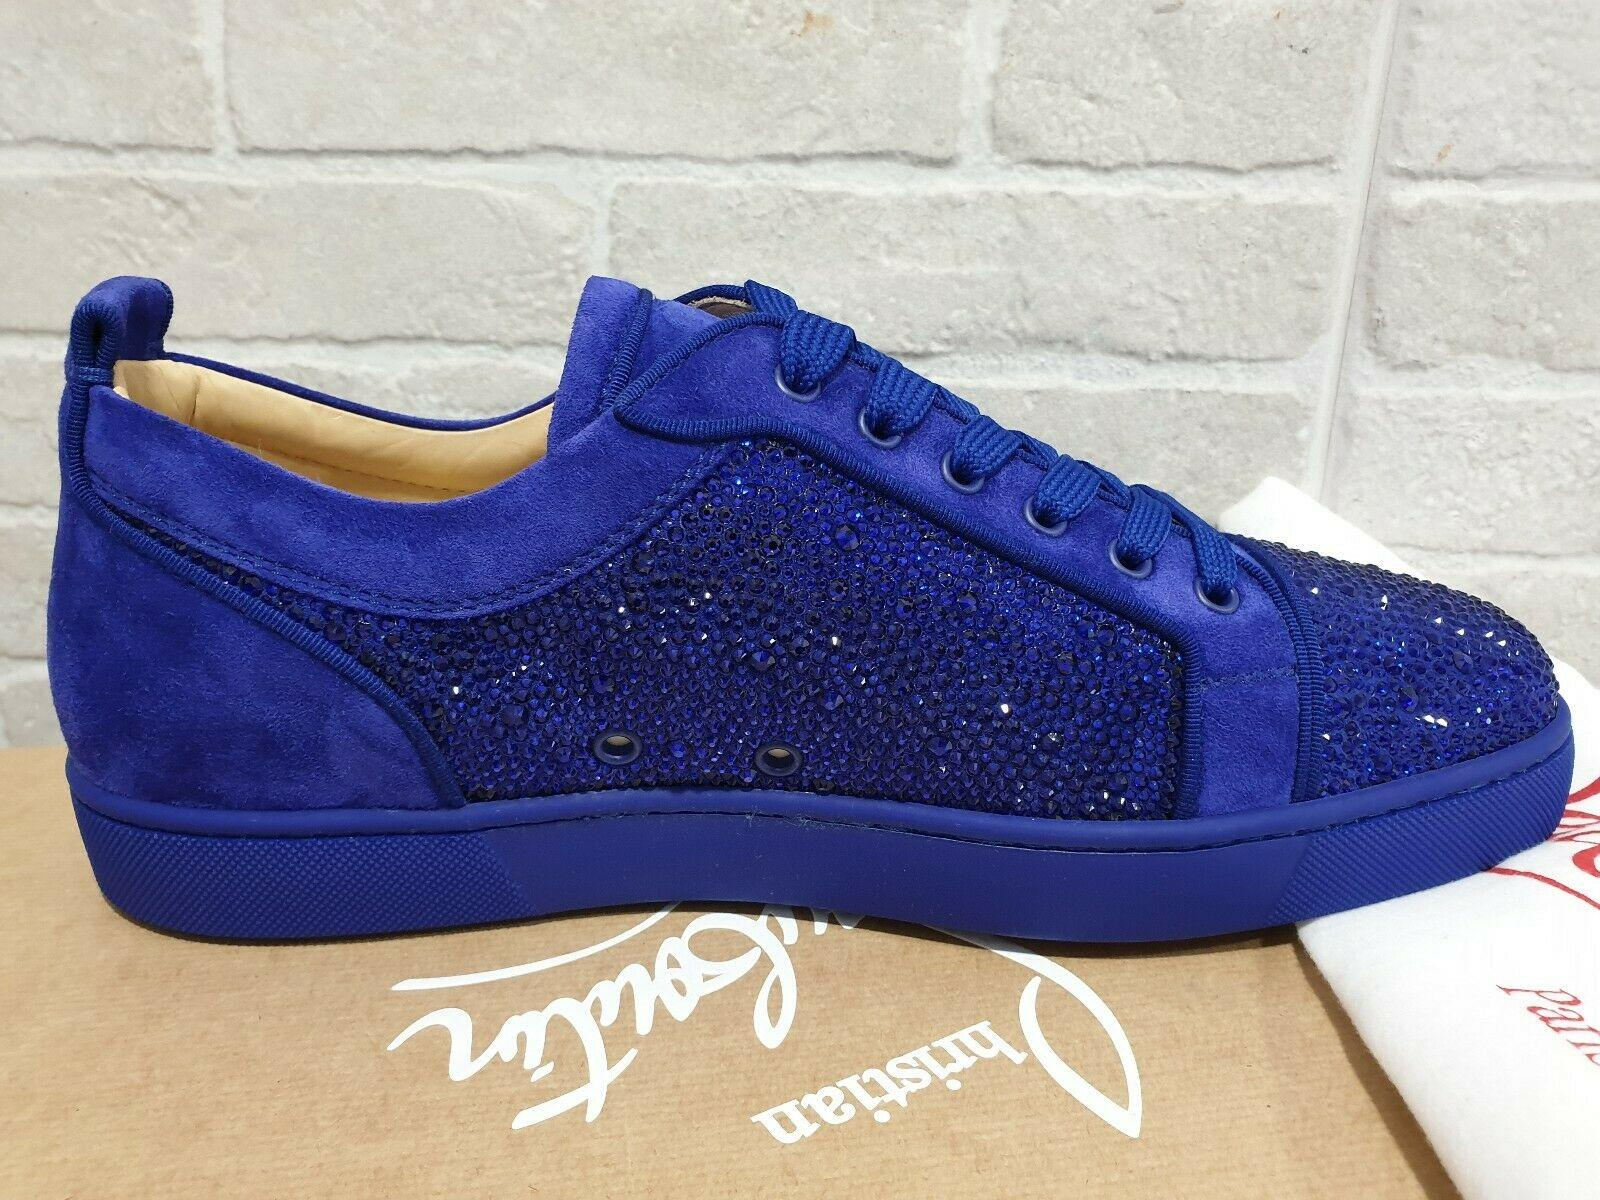 Christian Louboutin Louis Junior Strass Blue Sneakers brand luxury shoes sale